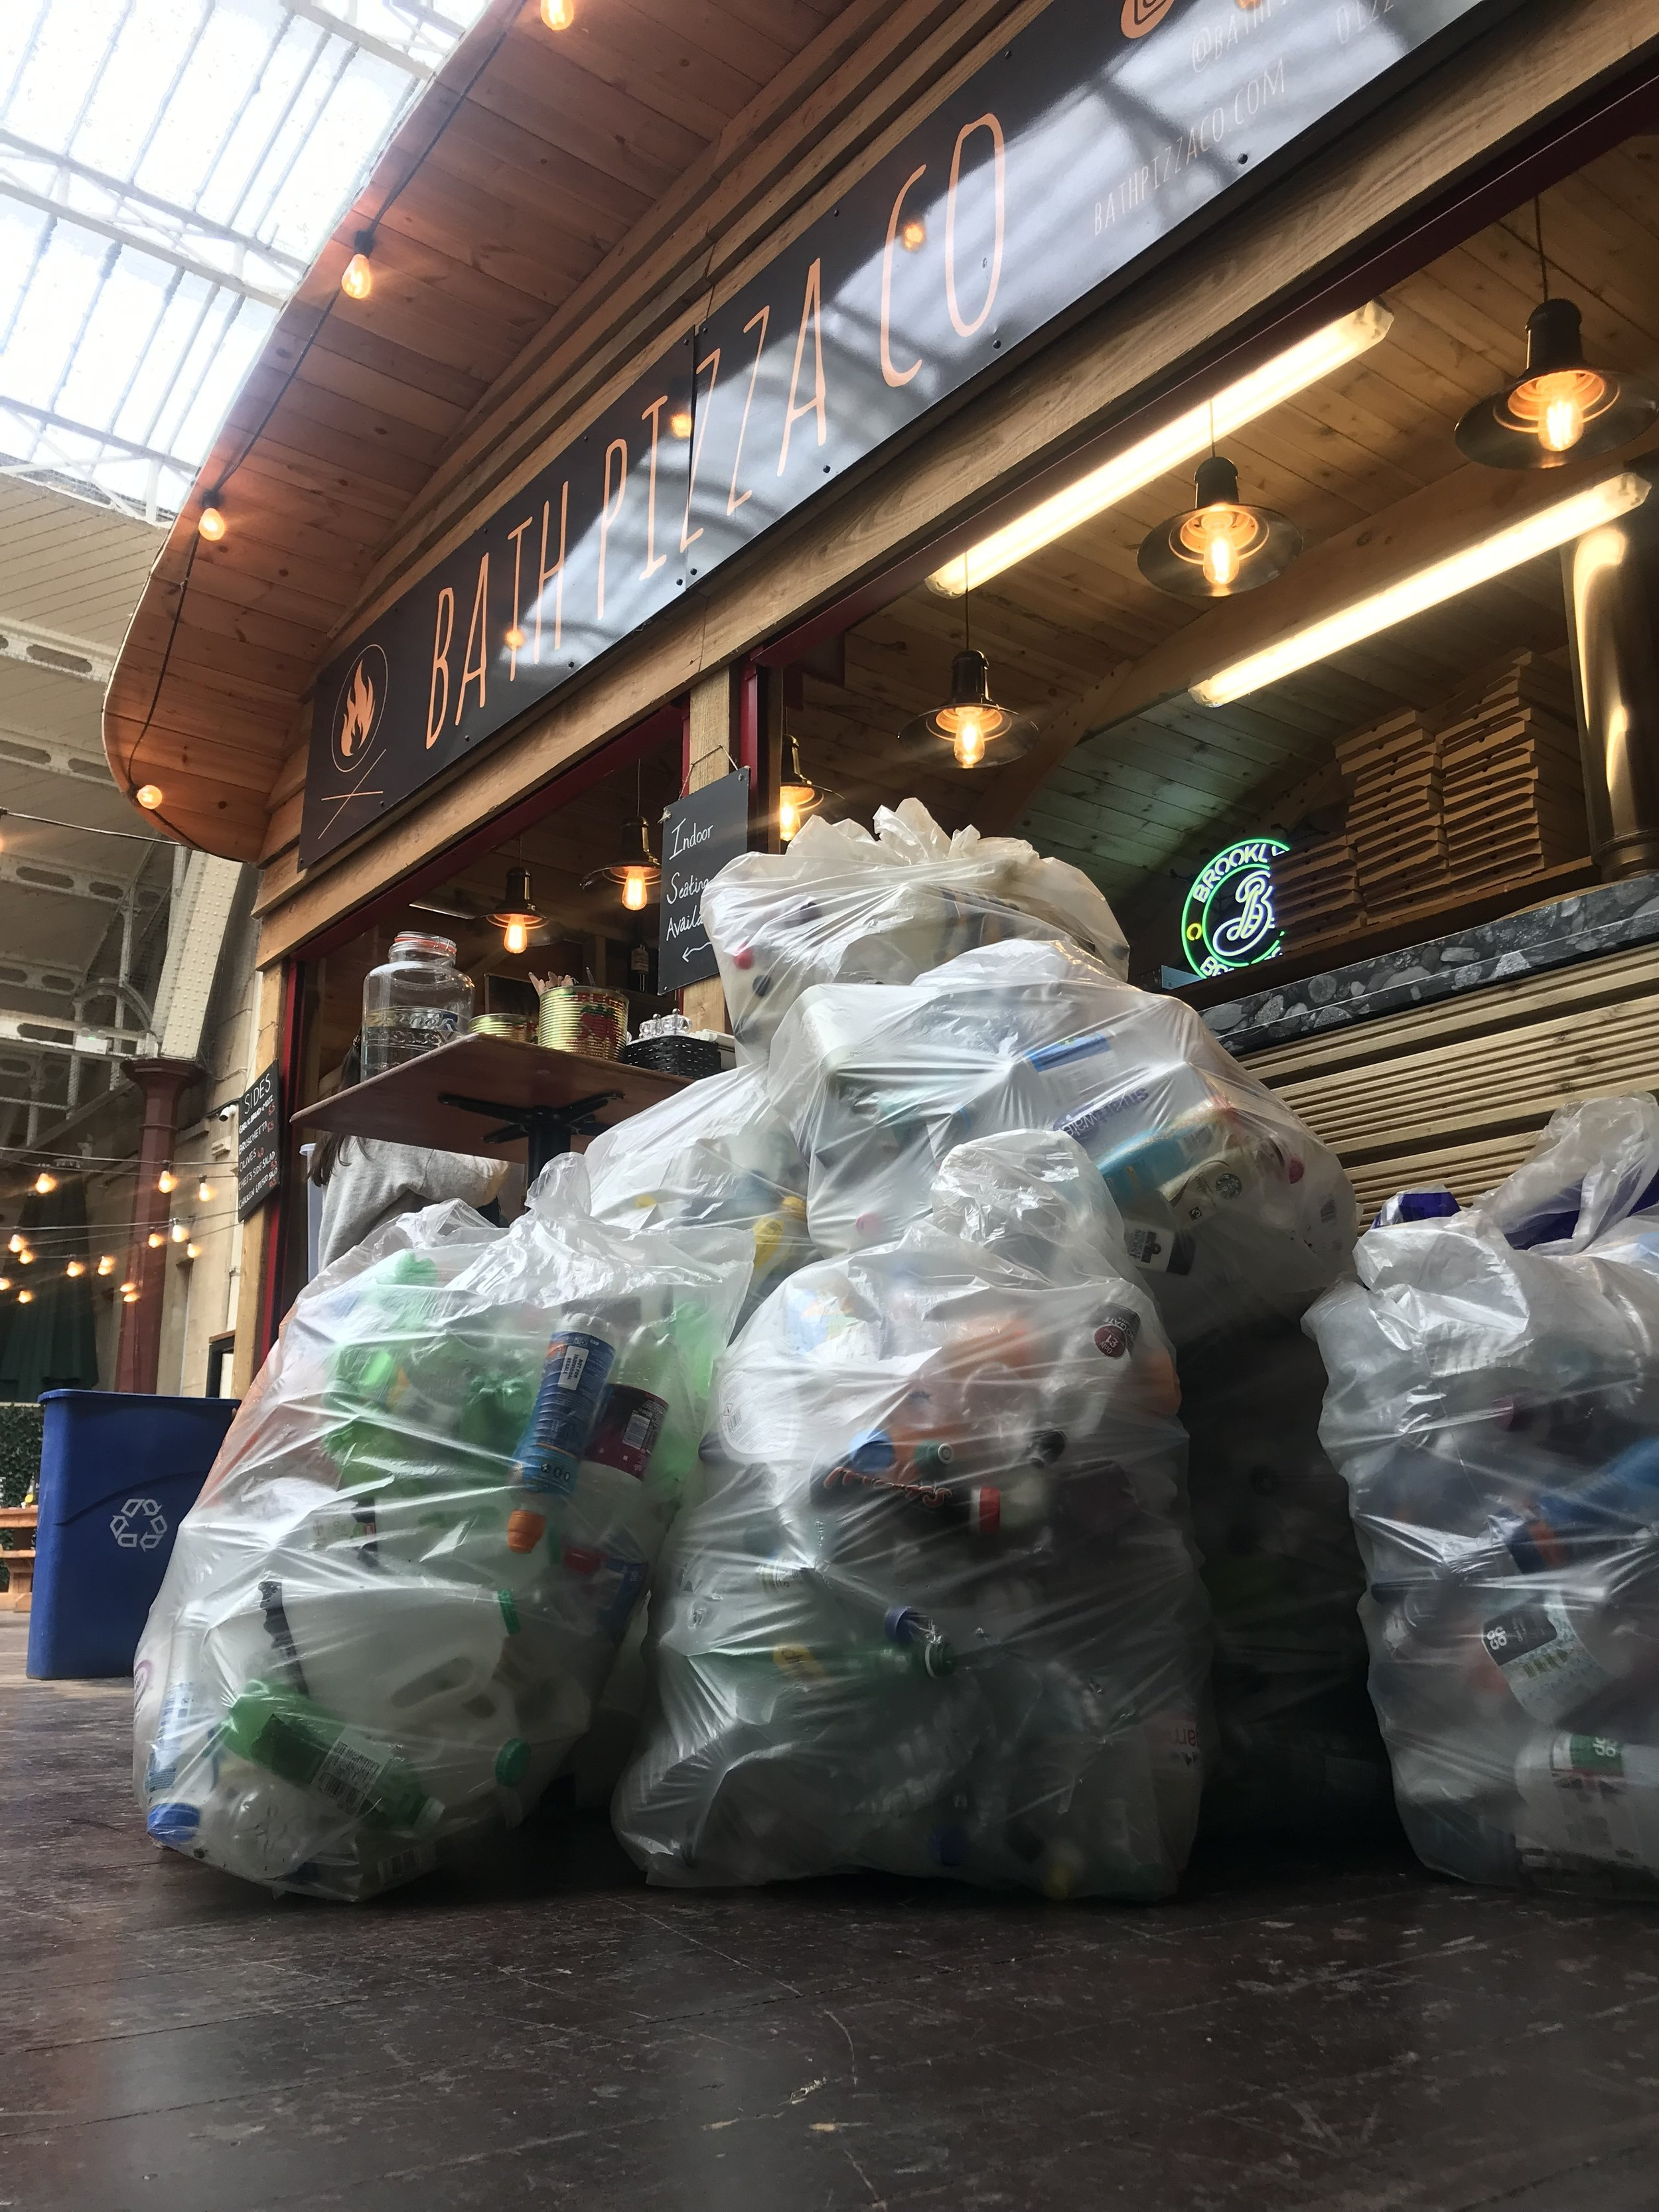 1, 736 plastic bottles were collected in just 3 hours. These will now be recycled into clothing, carpet, other plastic bottles and sleeping bags